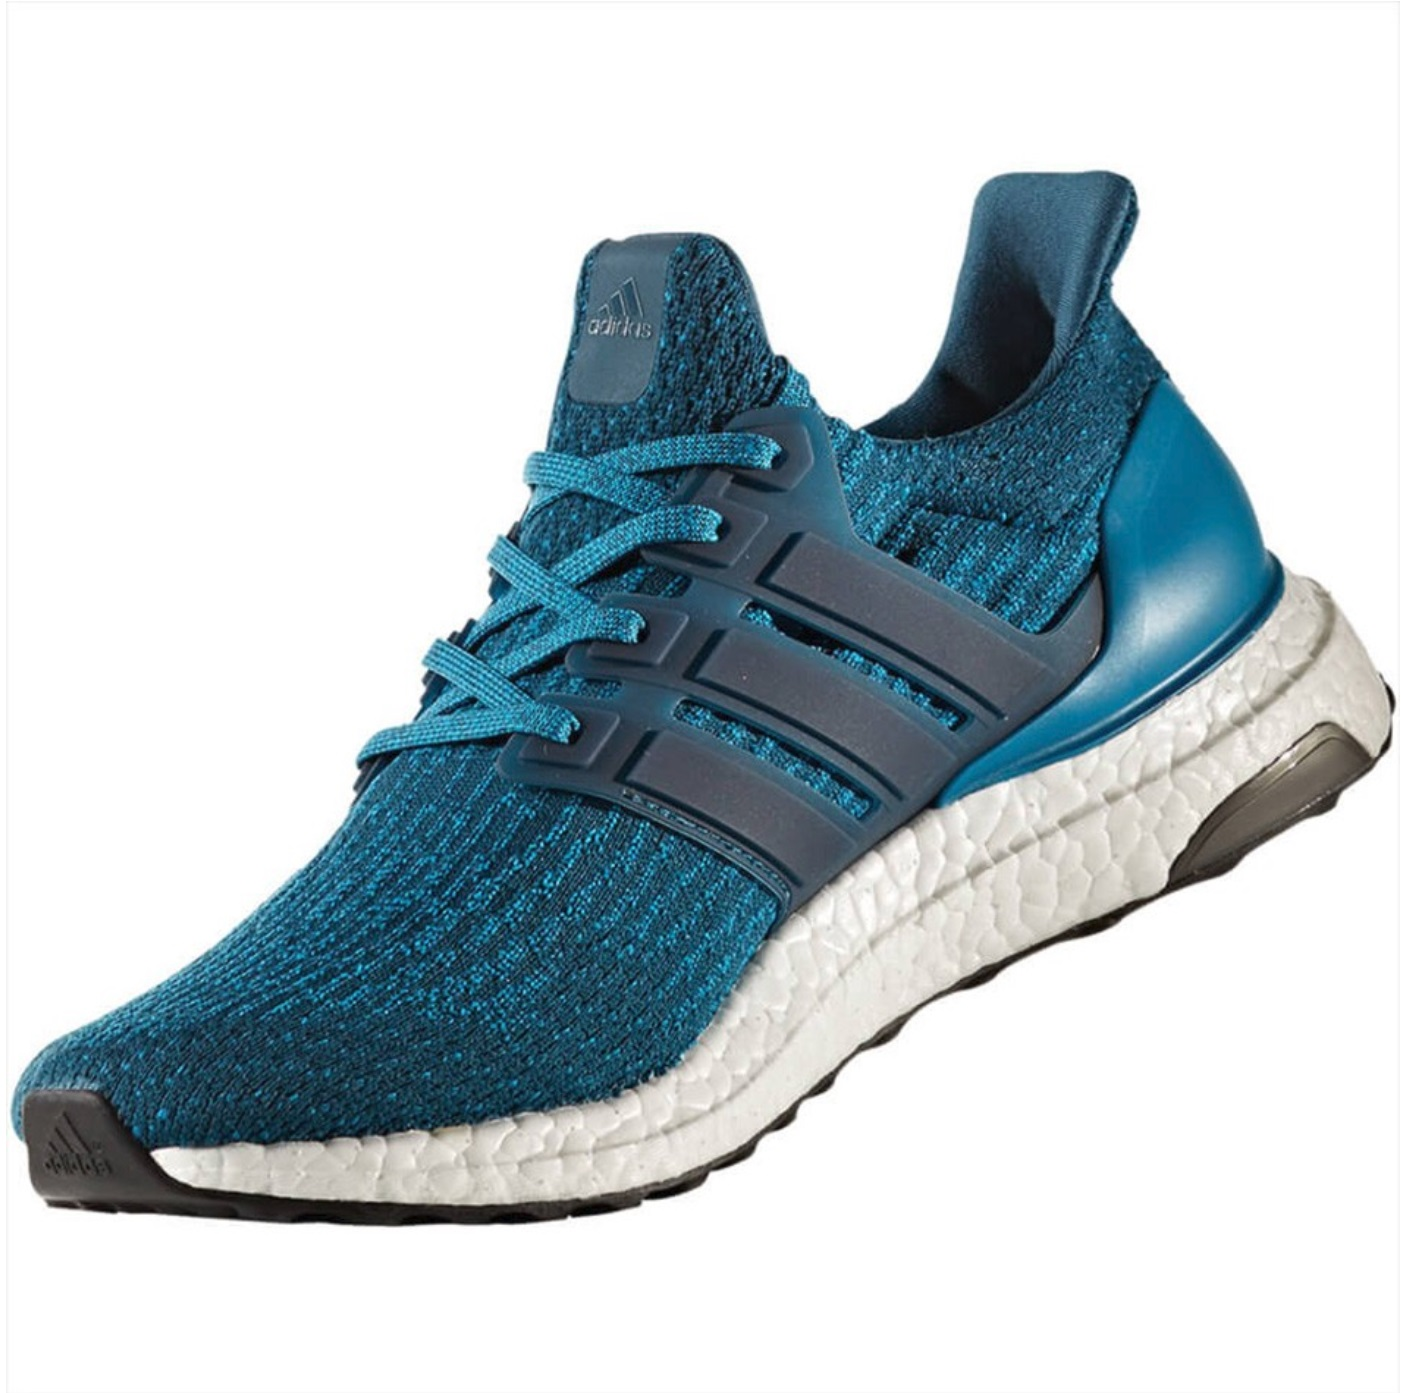 Adidas Ultra Boost C-S82021 For Men